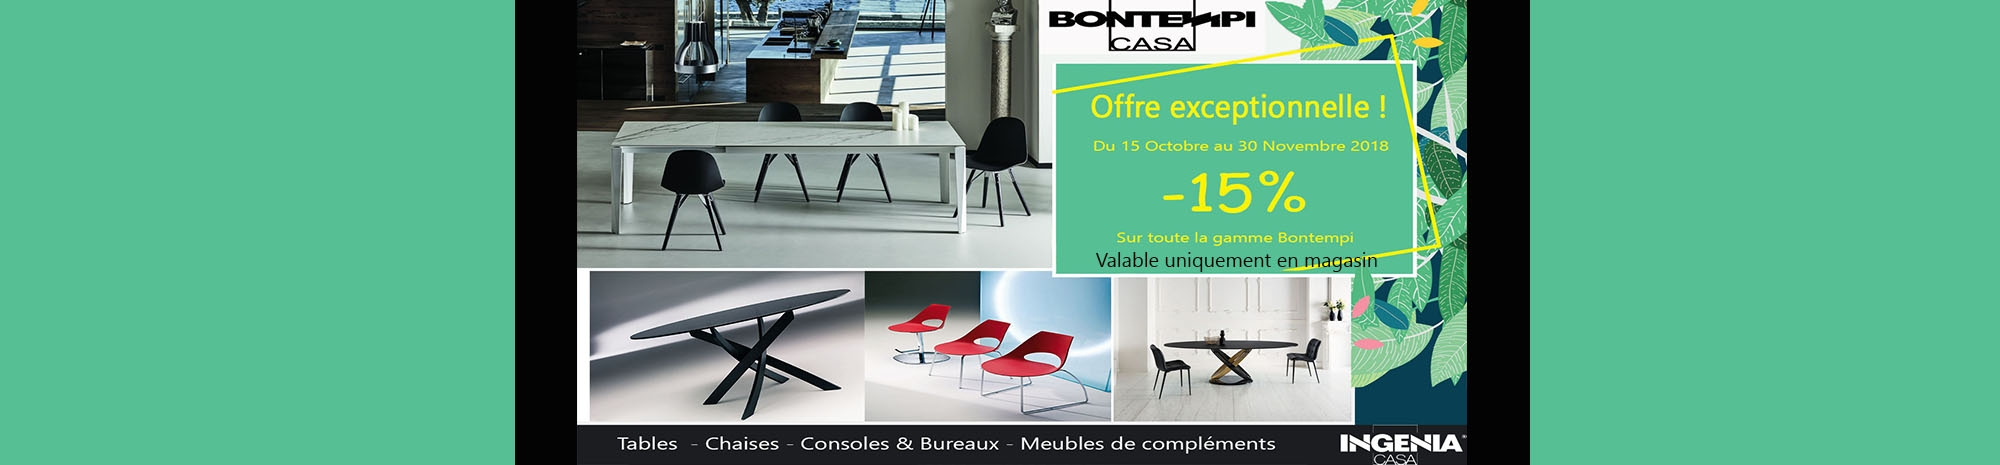 Promotion Bontempi Casa